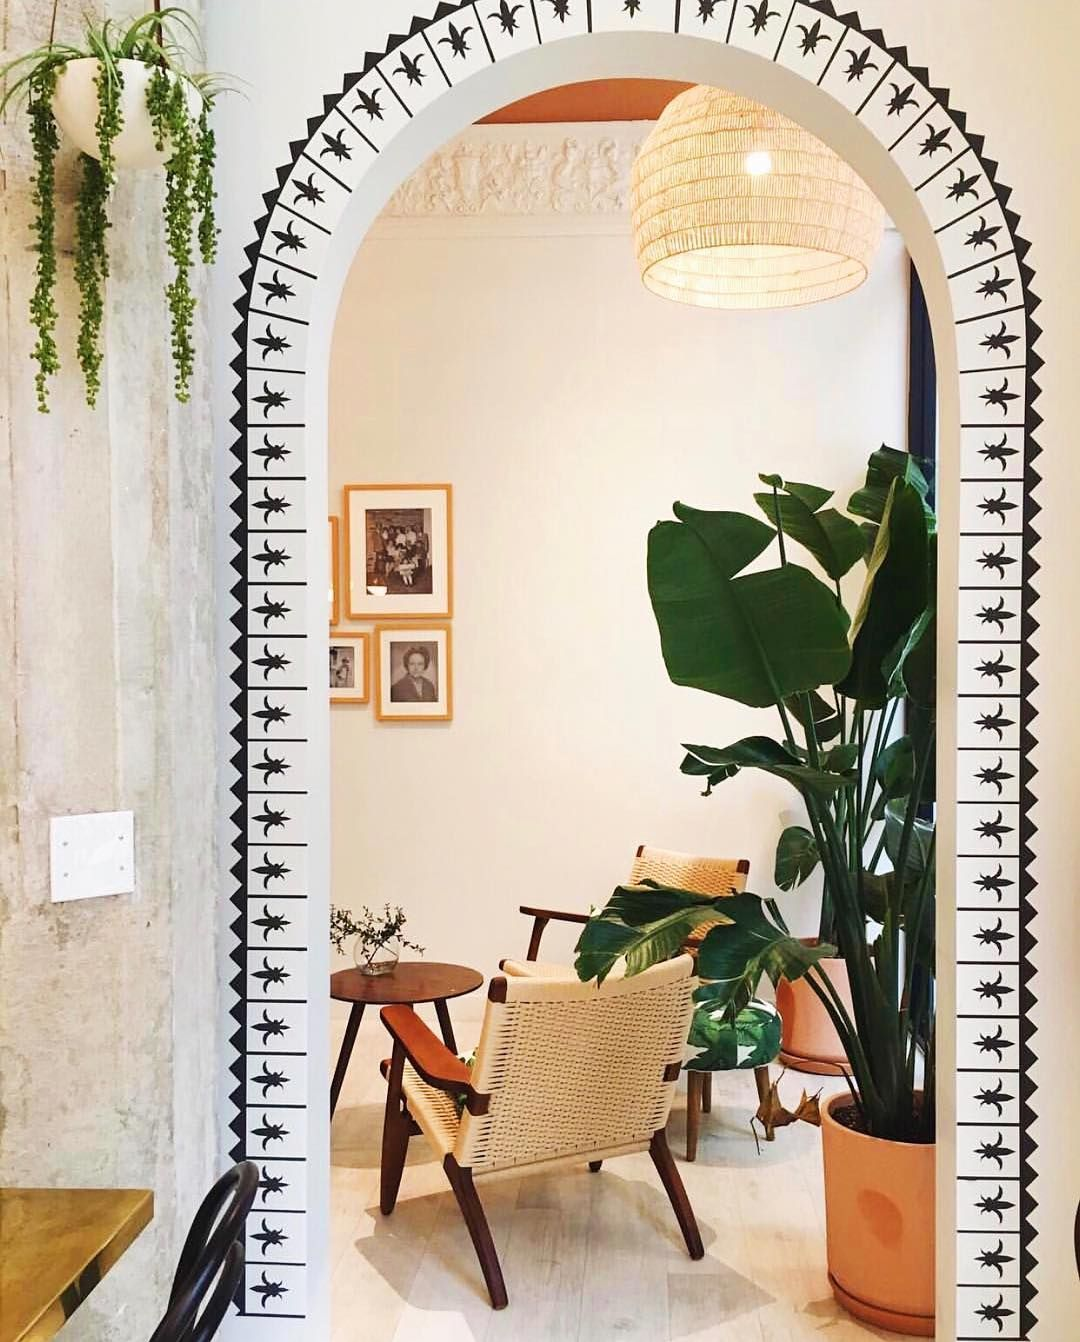 Captured By Cassondra Home: Dreamy Archway Goals Captured By @ruthidaugherty